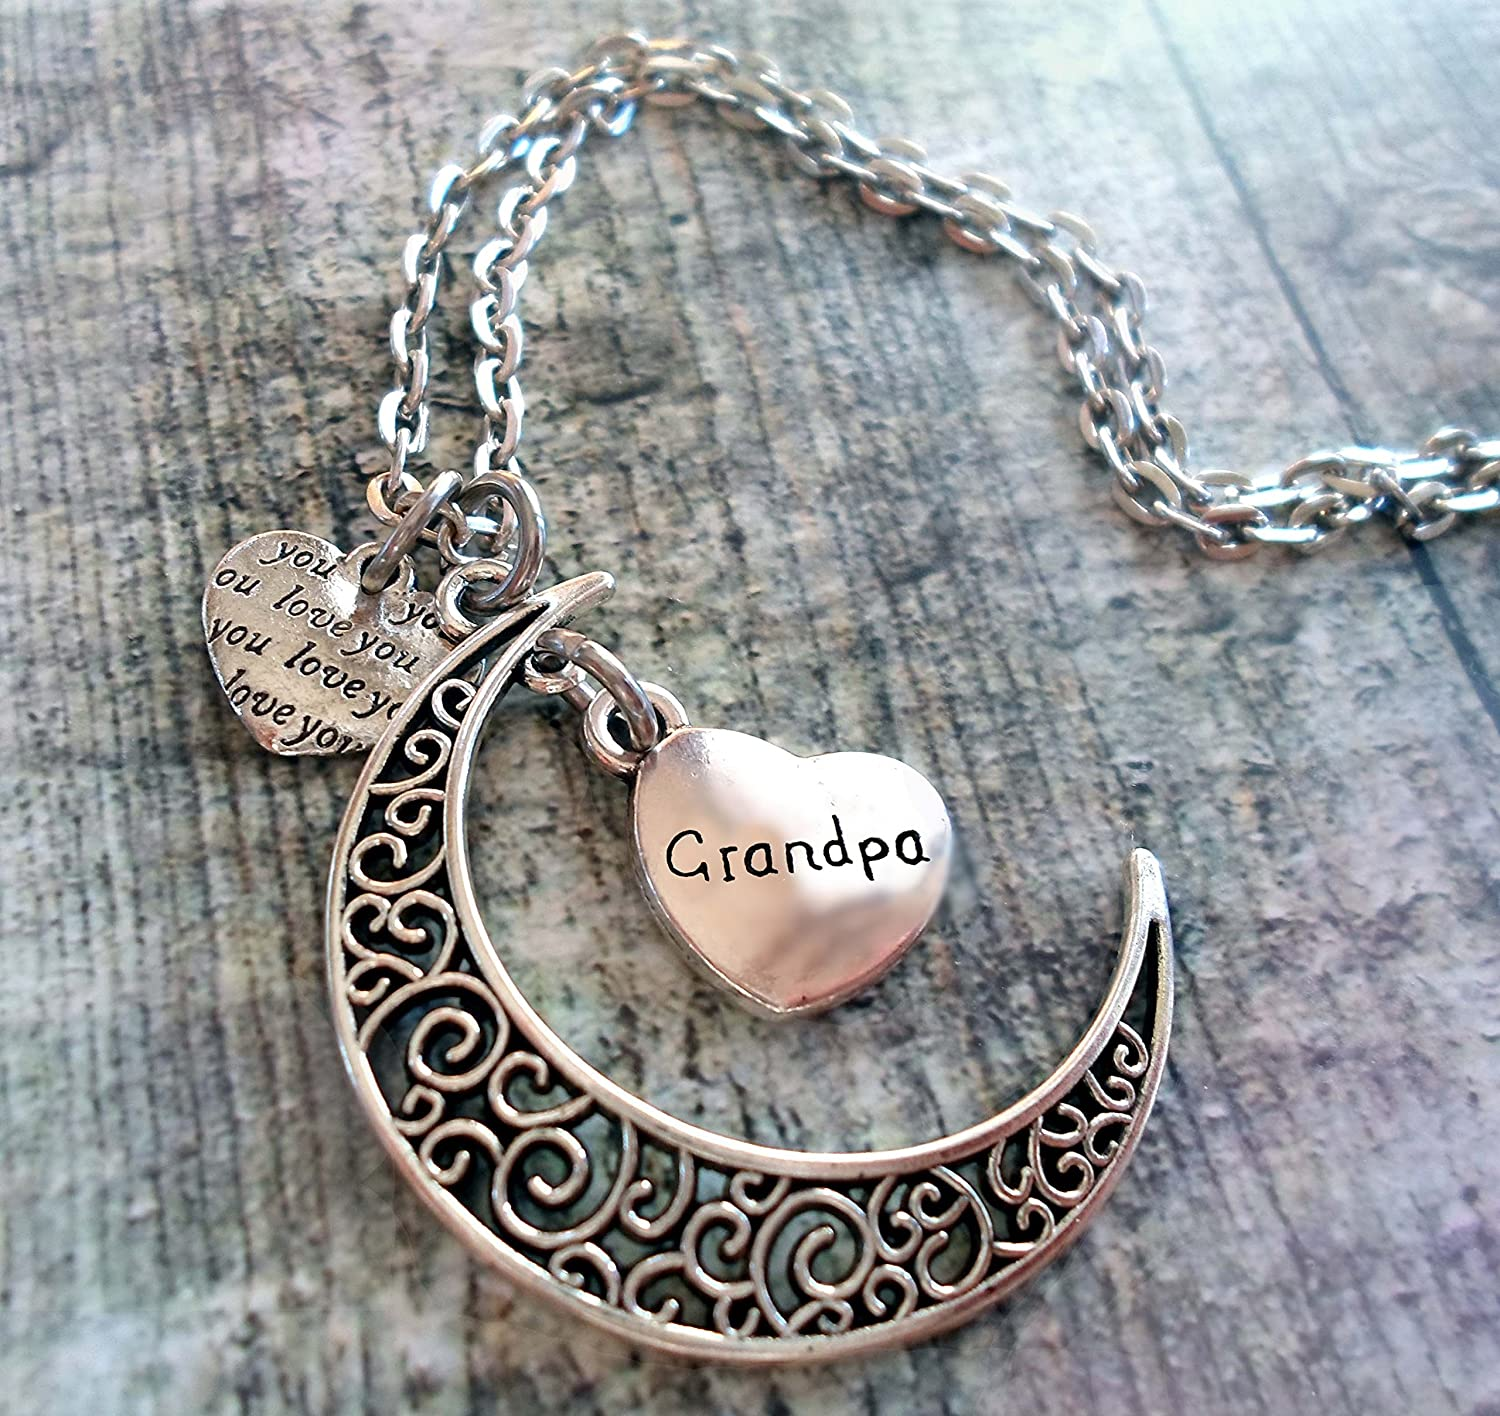 Filigree Crescent Moon Necklace with Engraved Grandpa Heart Hand-crafted with Love! Grandfather Gift